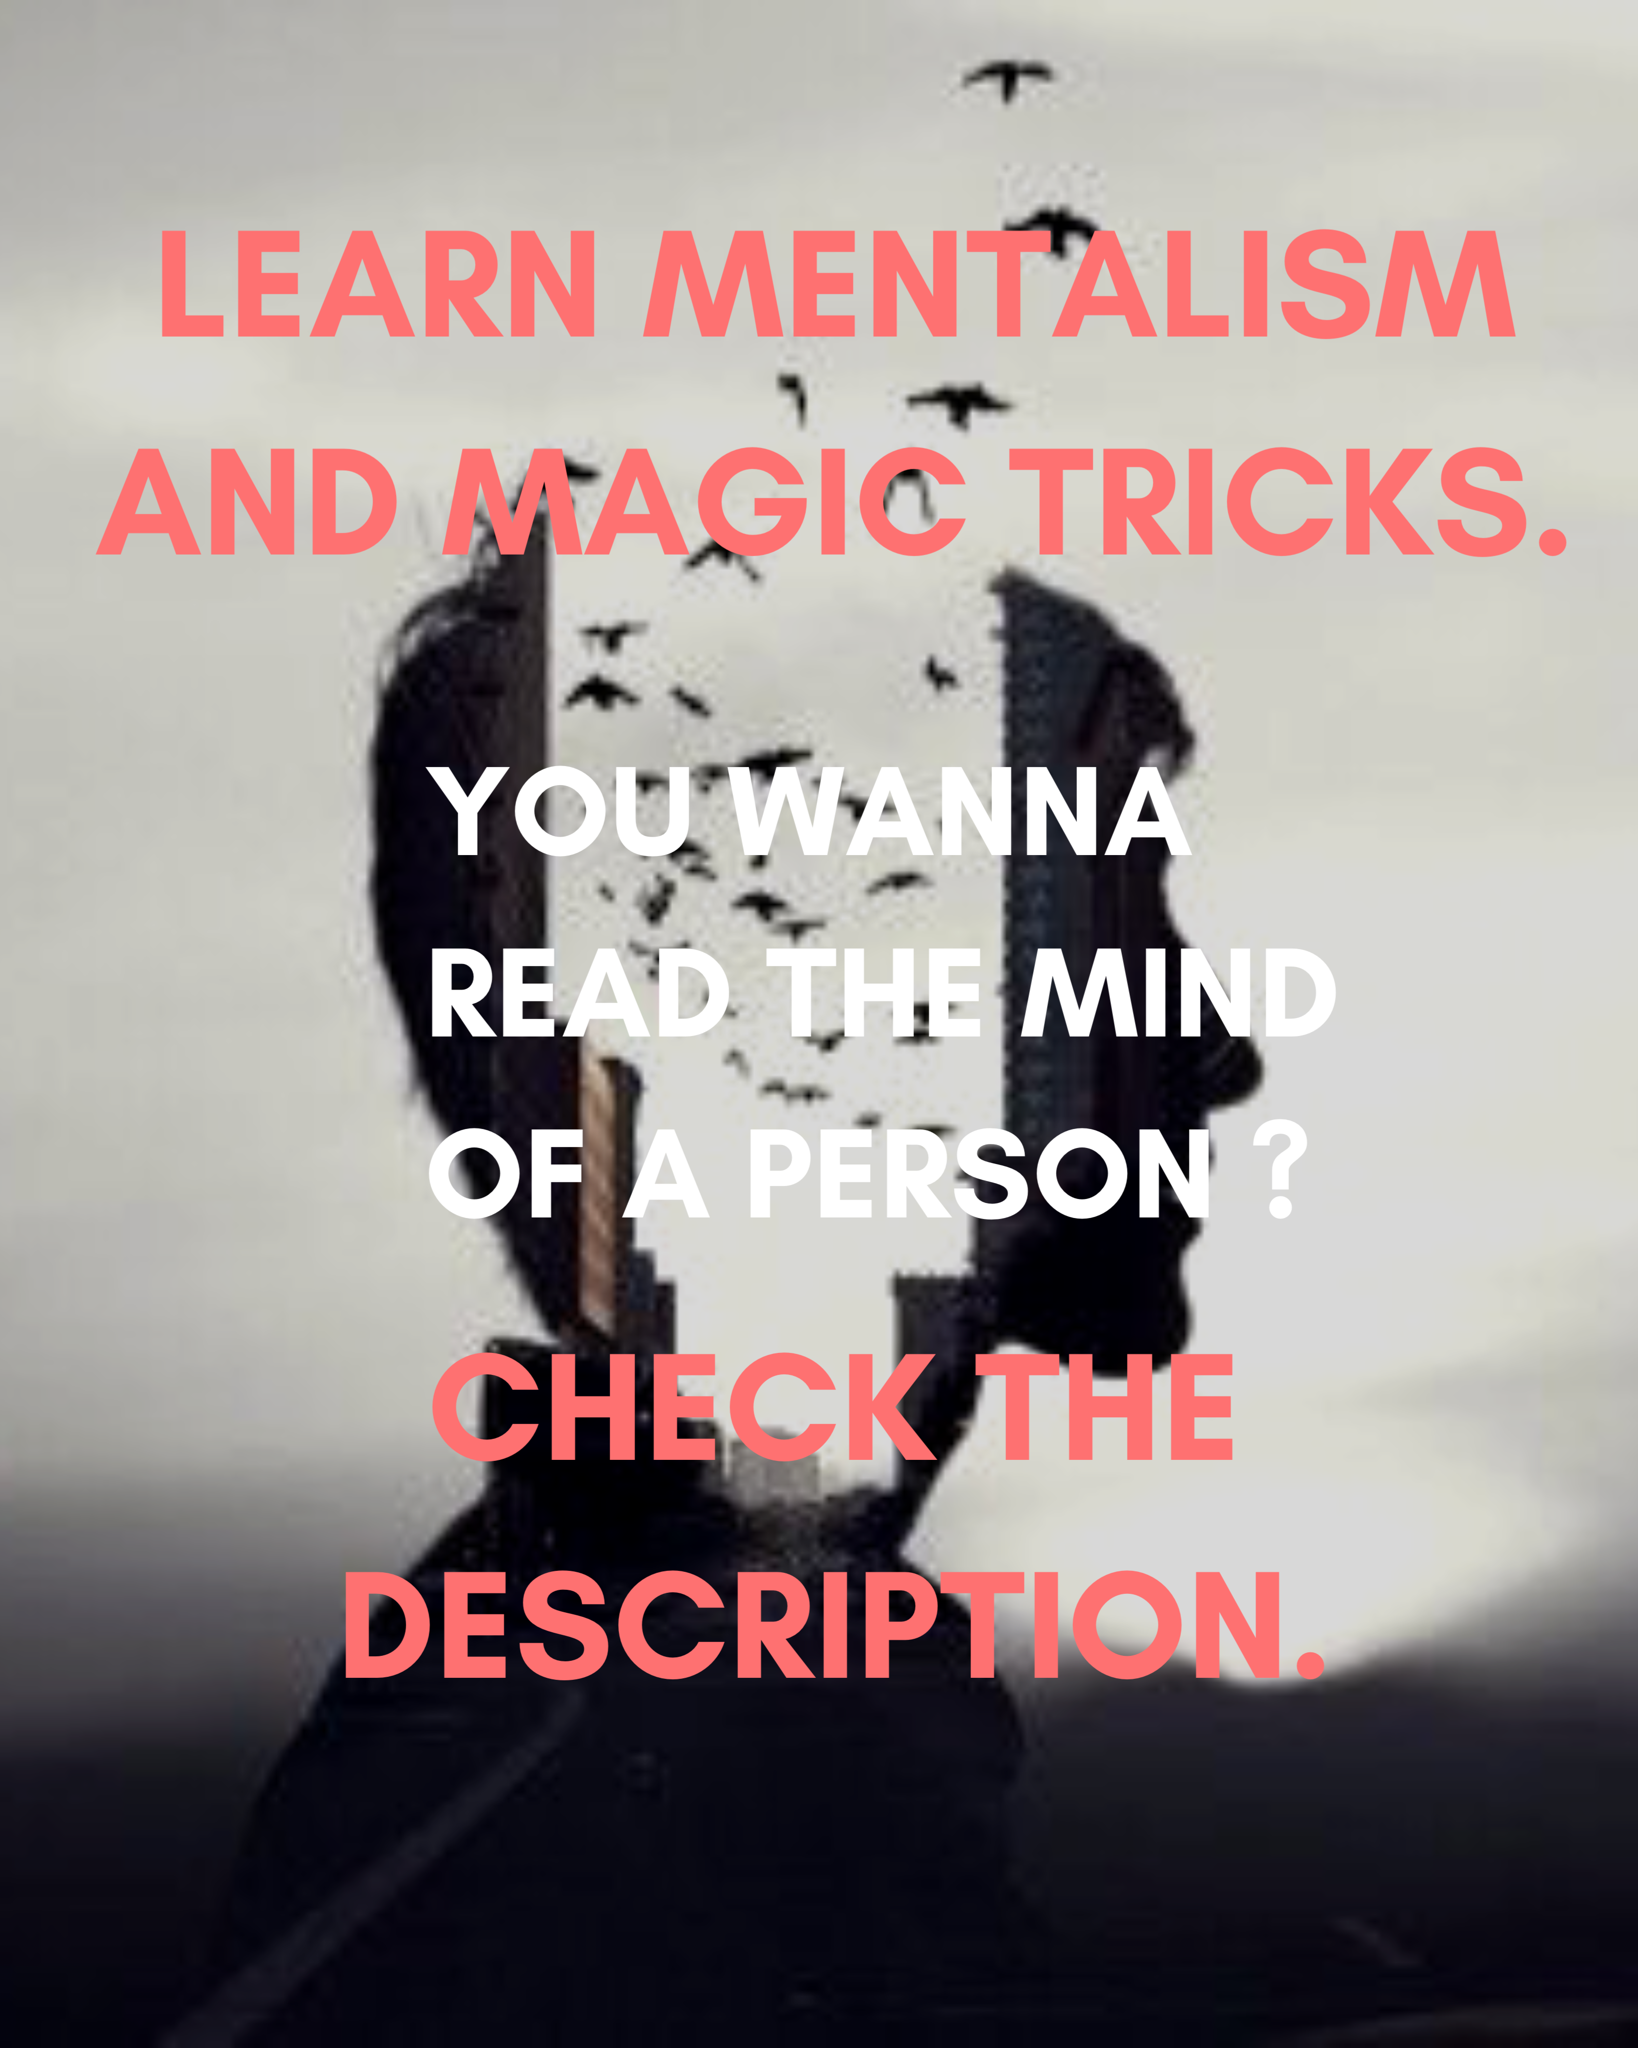 Learn To Be A Mentalist Learn Mentalism And Magic Tricks Mind Reading Tricks Psychological Manipulation Learning To Be